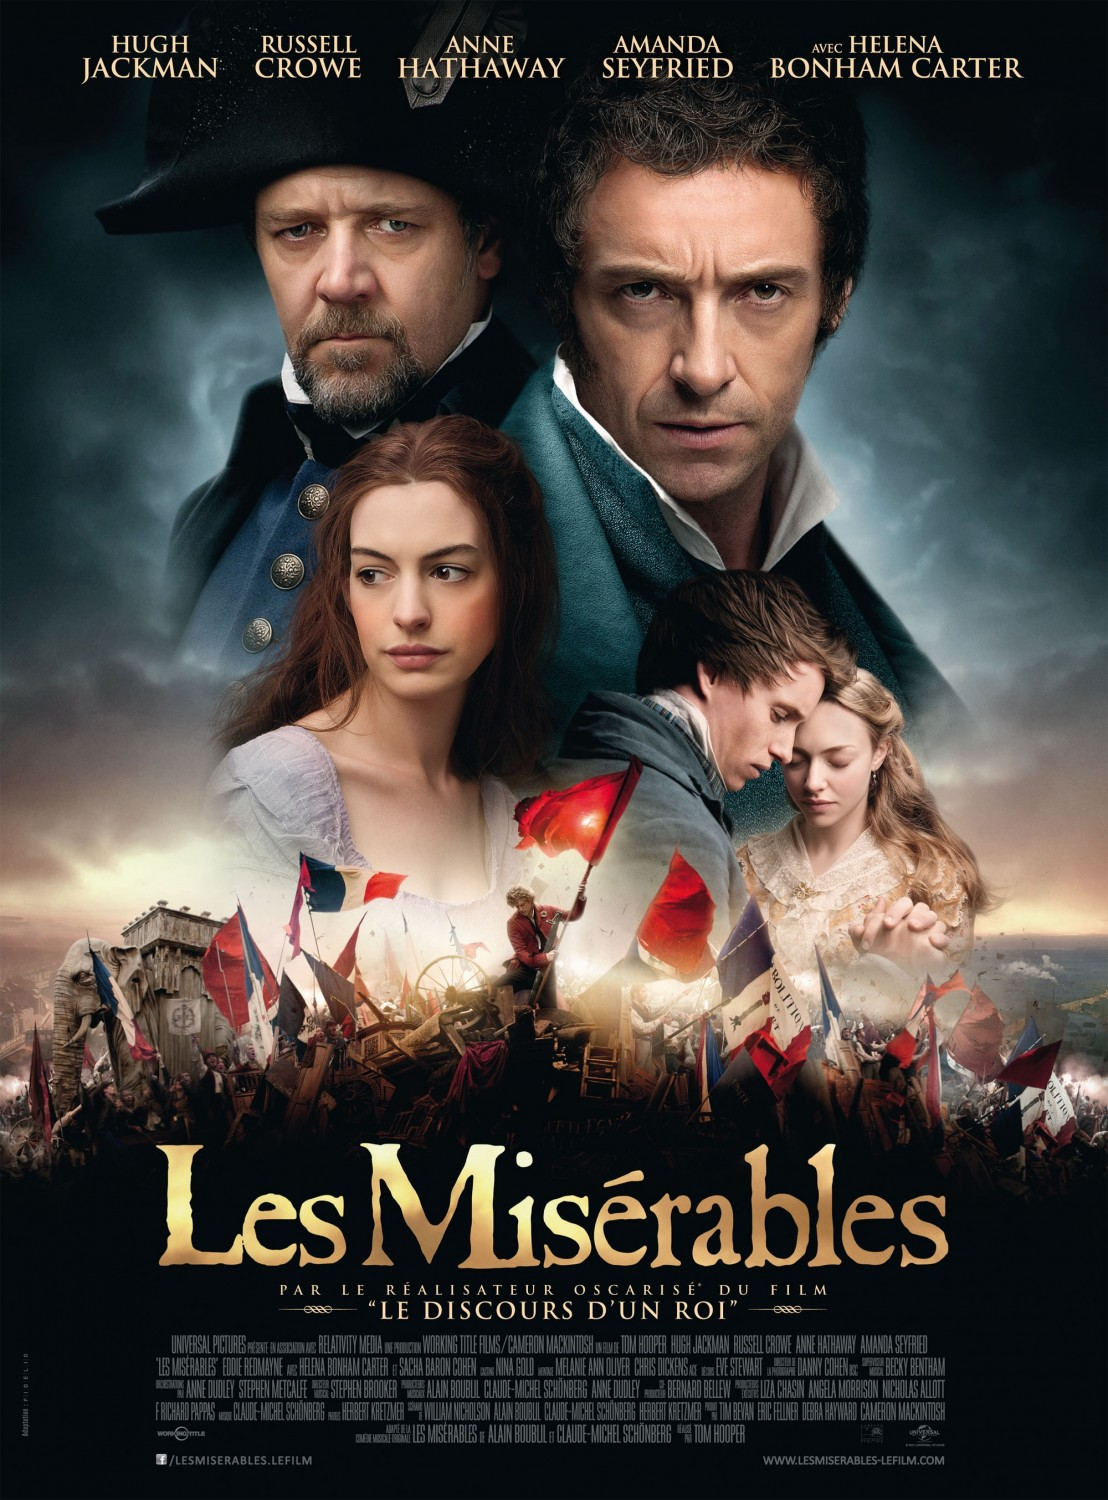 les-miserables-movie-poster-11